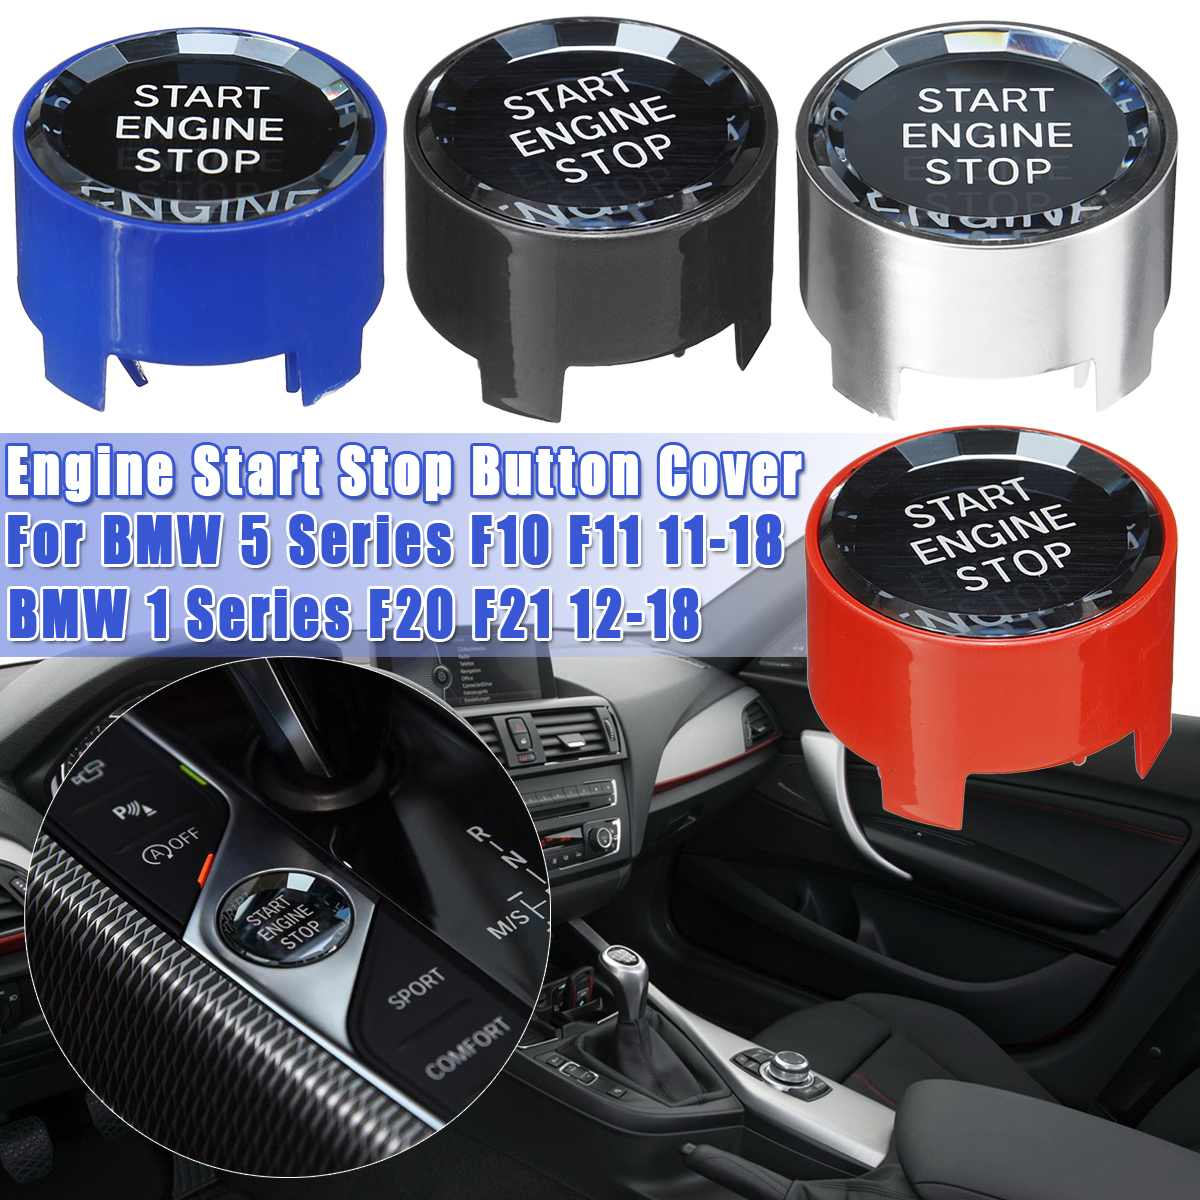 1PCS Crystal Engine Start Stop Button Cover For <font><b>BMW</b></font> 1 2 <font><b>3</b></font> 4 5 series F10 F11 F20 F21 F22 F23 F30 F31 F32 F33 Replacement Parts image